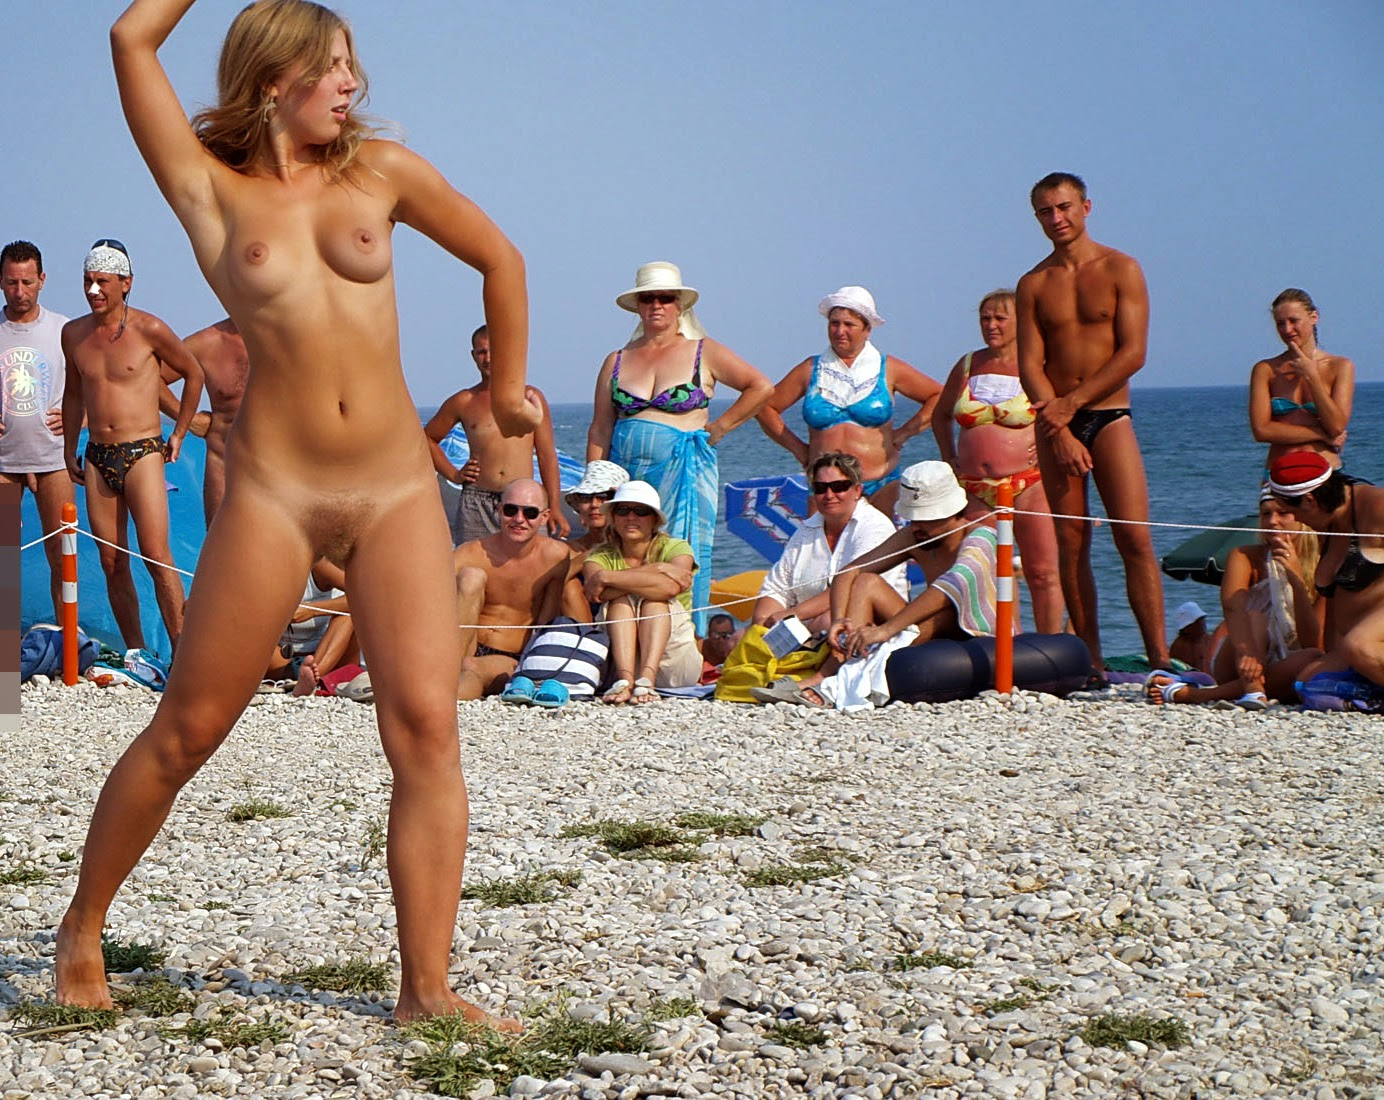 Commit nudism family beach pageant sorry